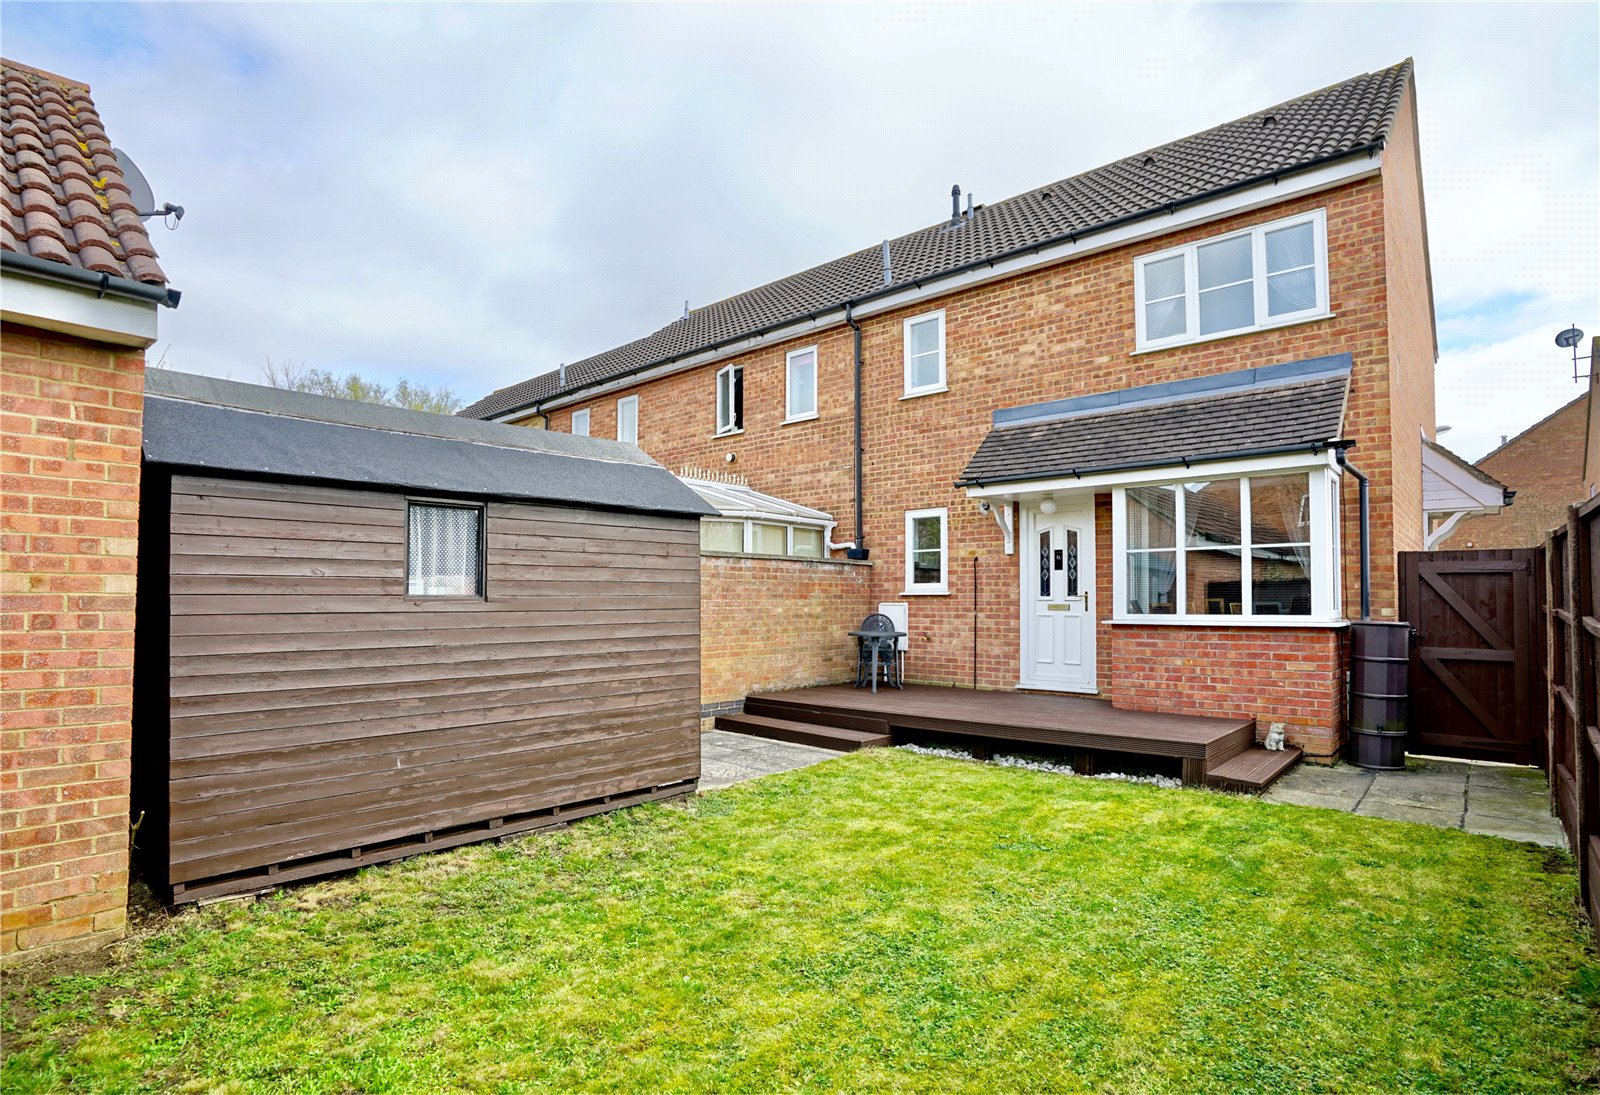 1 bed house for sale in Begwary Close, Eaton Socon, PE19